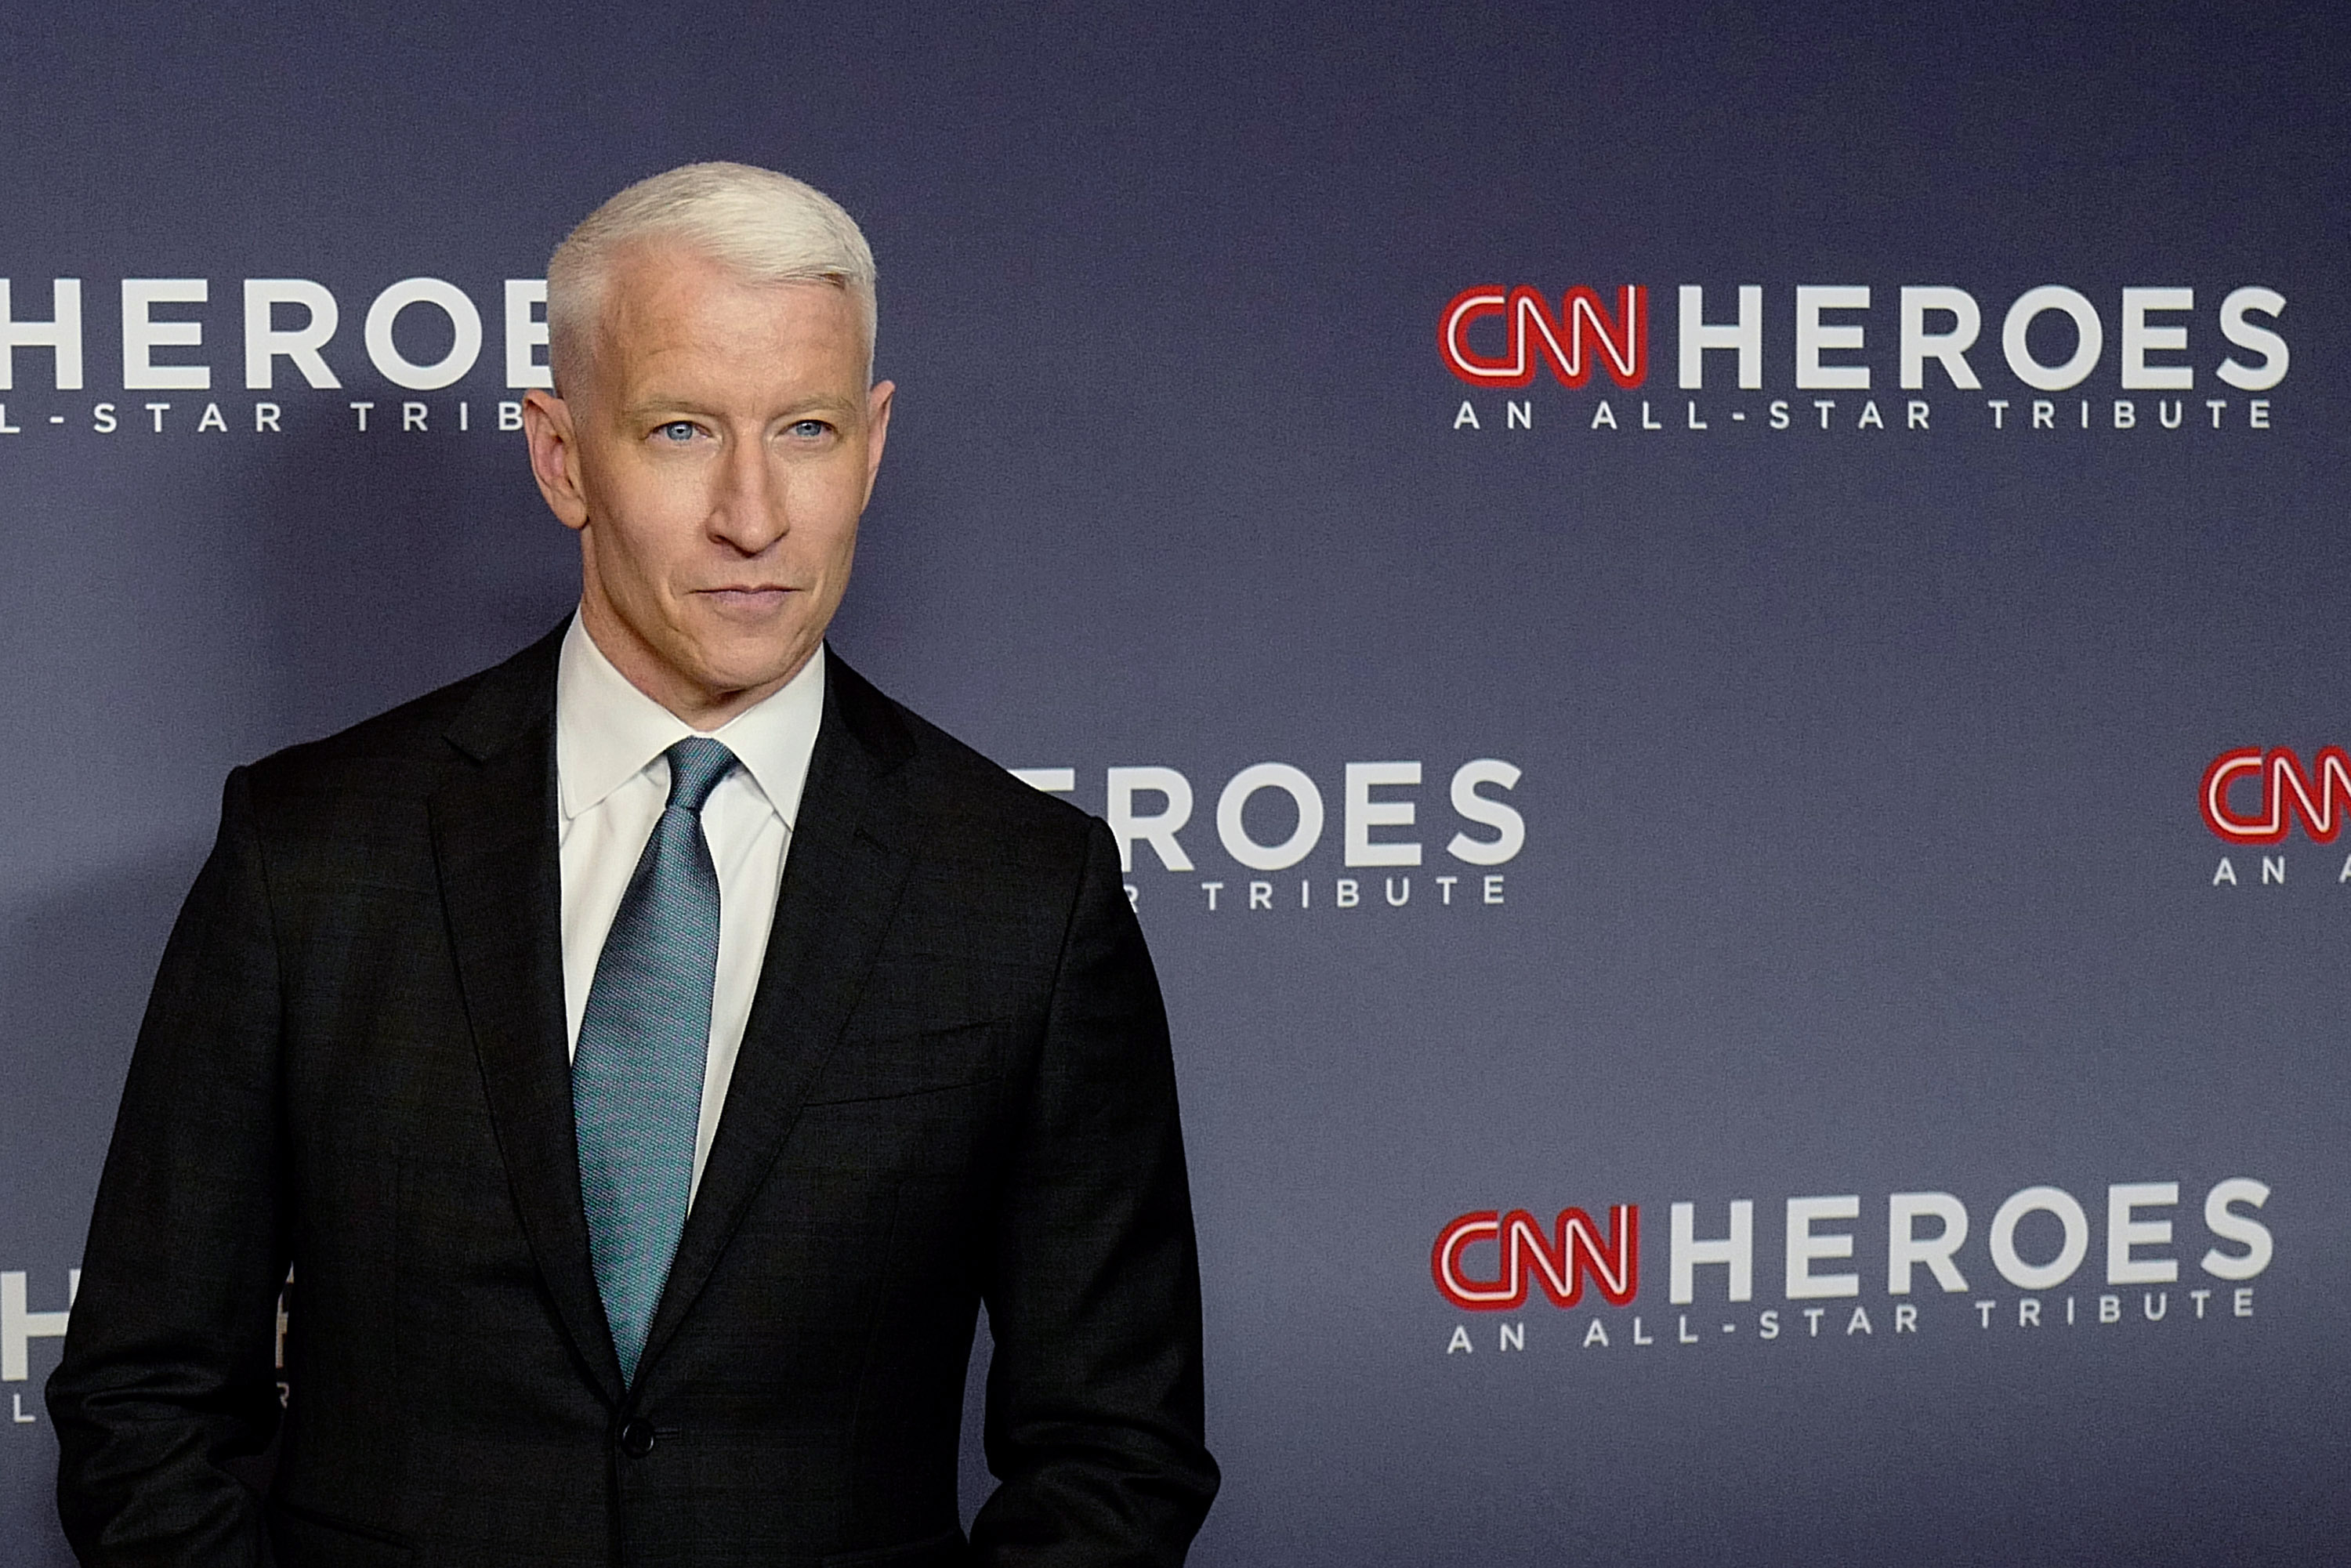 Anderson Cooper attends the 12th Annual CNN Heroes: An All-Star Tribute at American Museum of Natural History on December 09, 2018 in New York City. (Photo by Dominik Bindl/Getty Images)